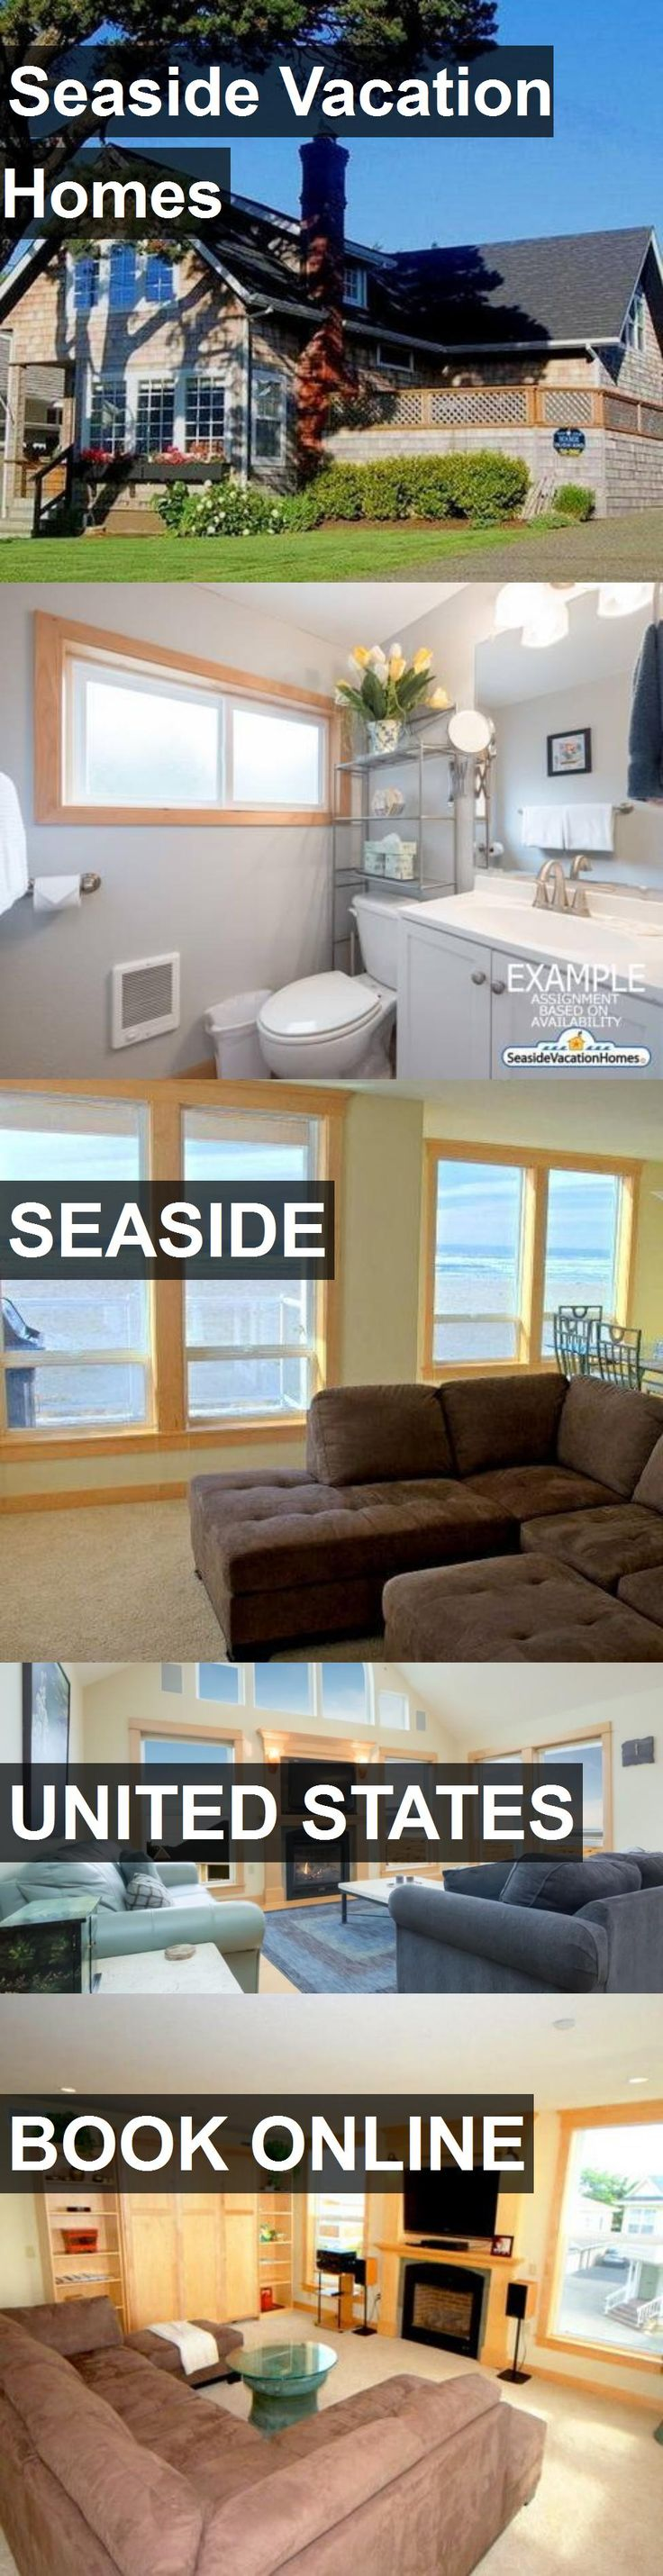 Hotel Seaside Vacation Homes in Seaside, United States. For more information, photos, reviews and best prices please follow the link. #UnitedStates #Seaside #hotel #travel #vacation